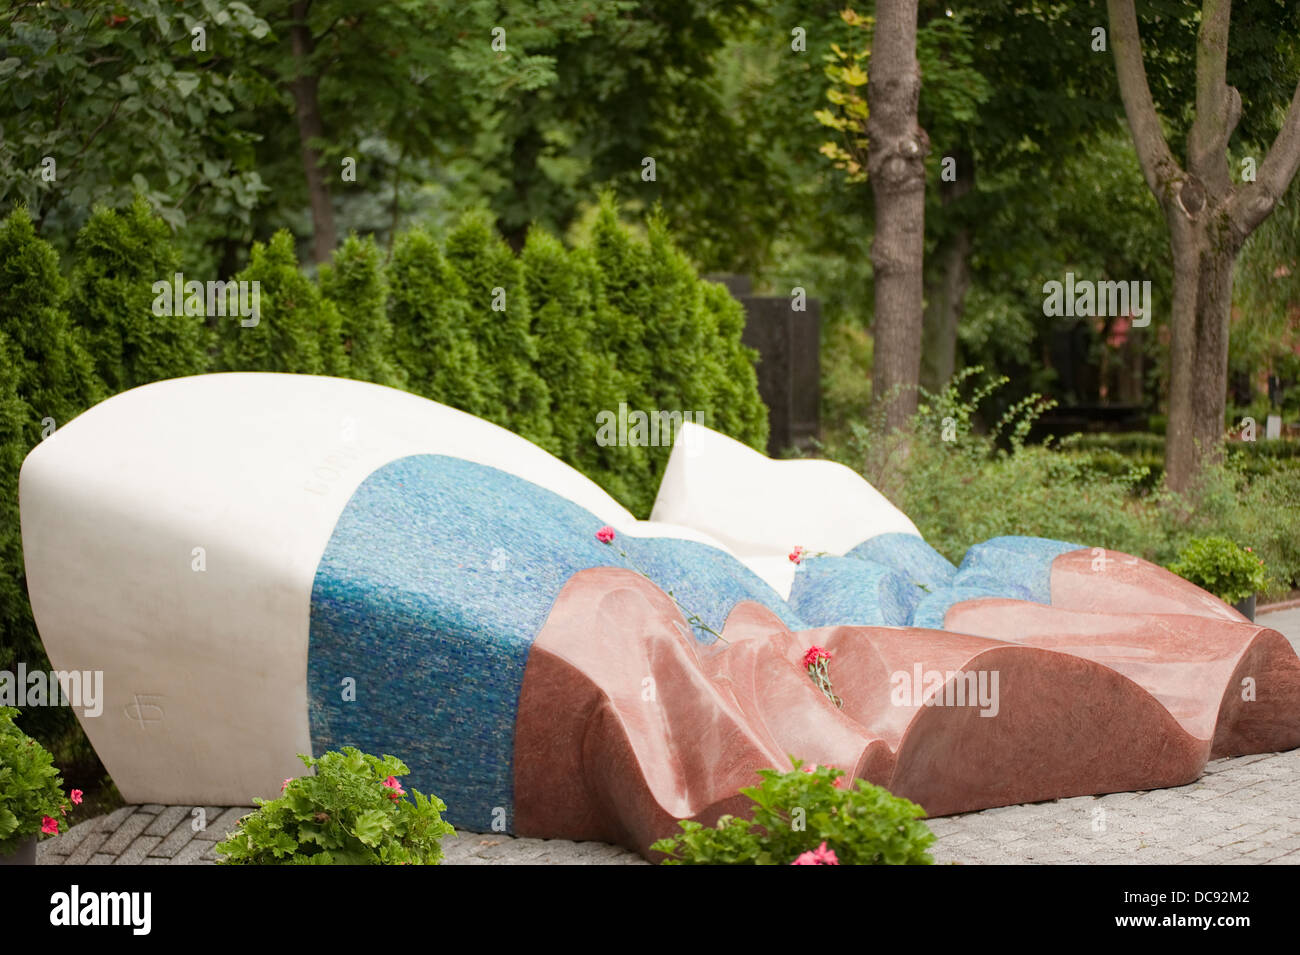 Boris Yeltsin grave at Novodevichy Cemetery in Moscow Russia - Stock Image